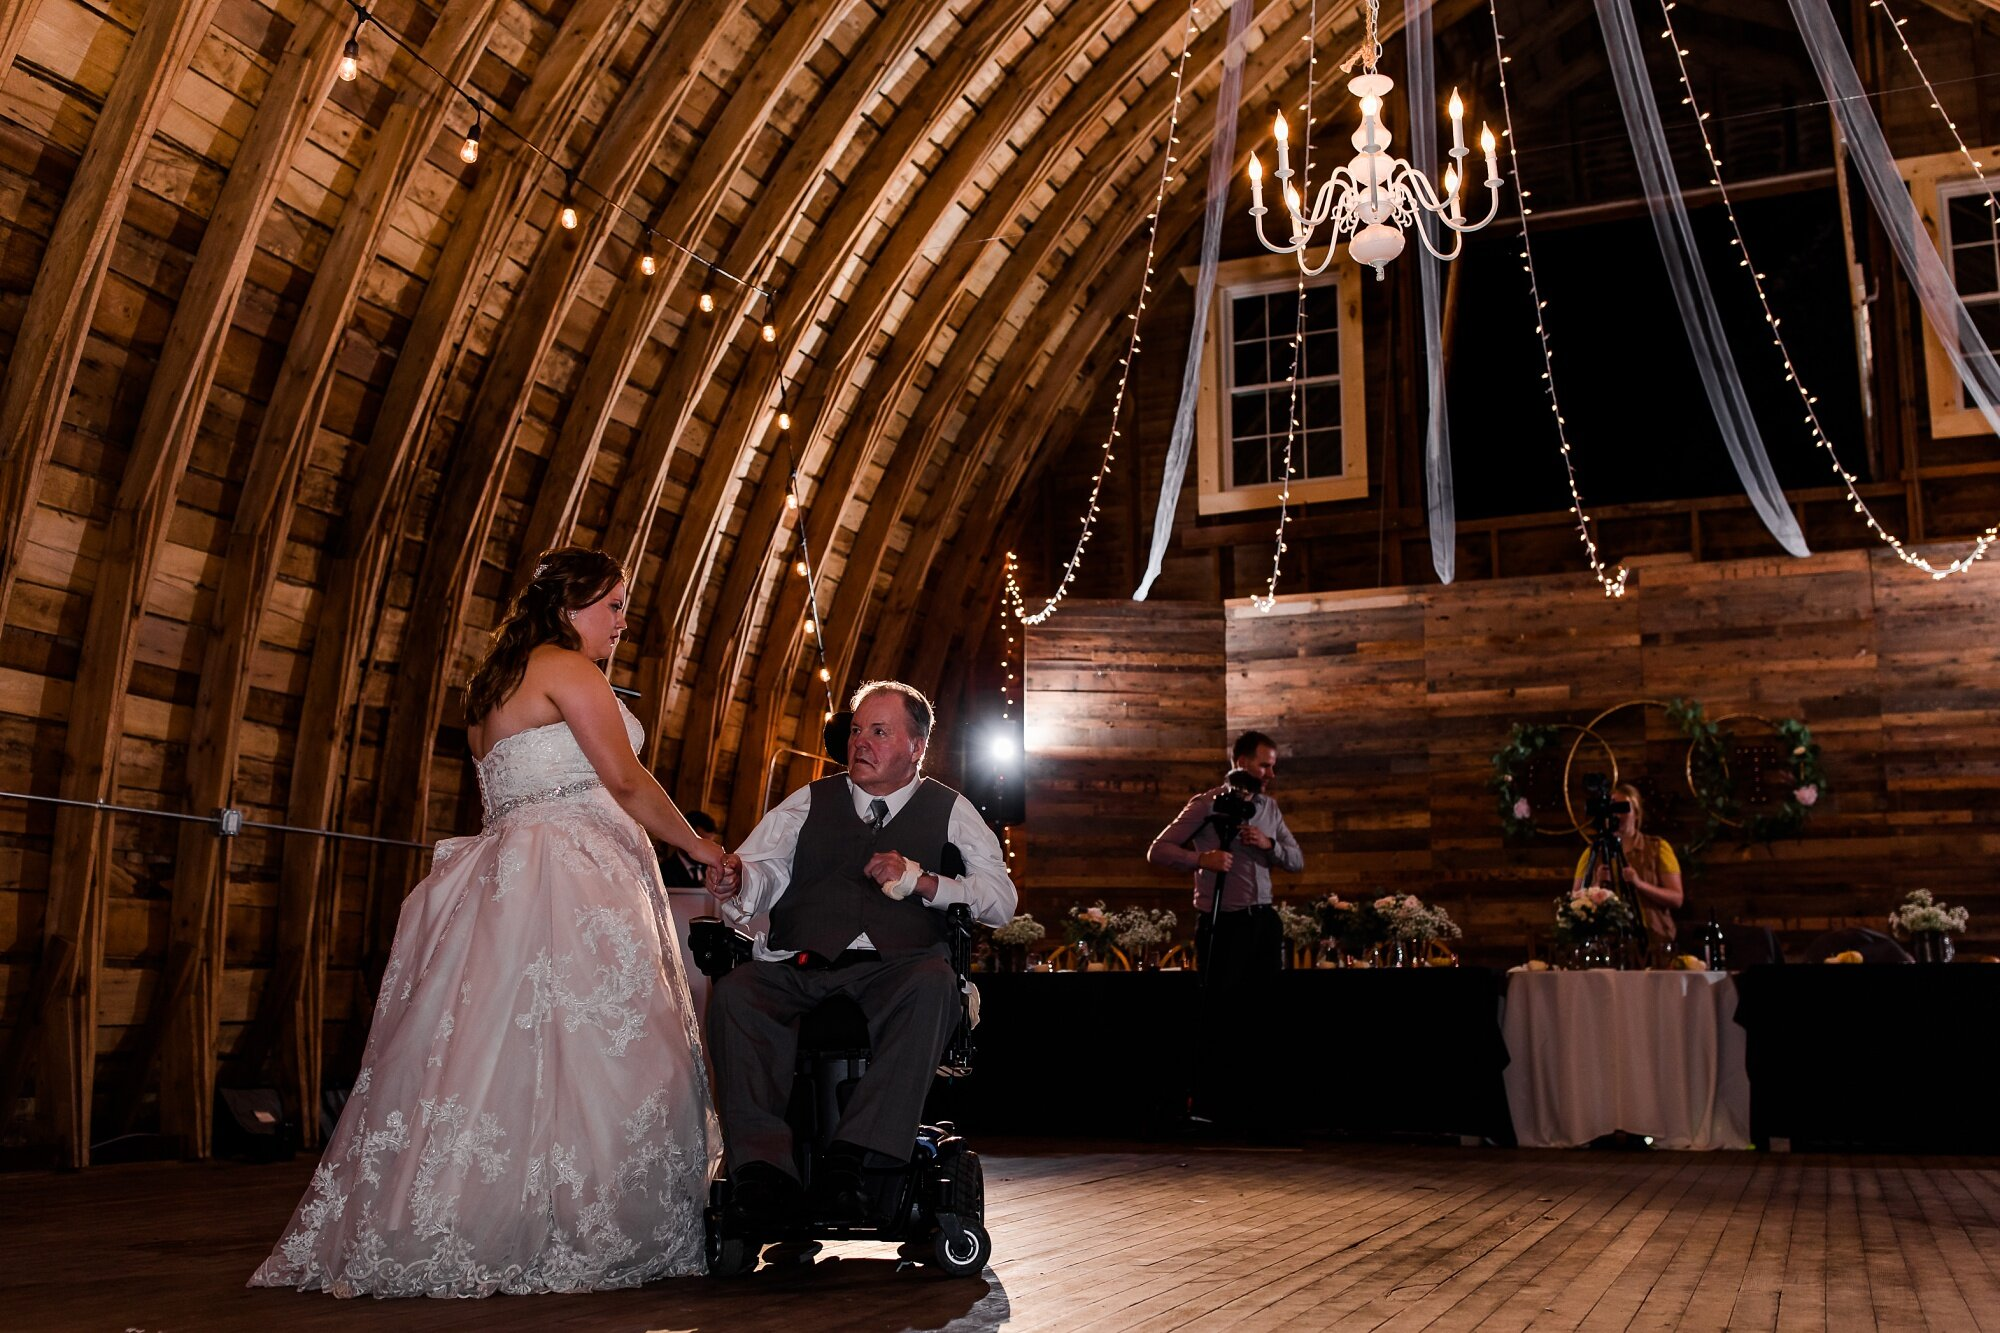 Amber Langerud Photography_Lake Park Minnesota, Outdoor Barn Wedding With Horses_7024.jpg